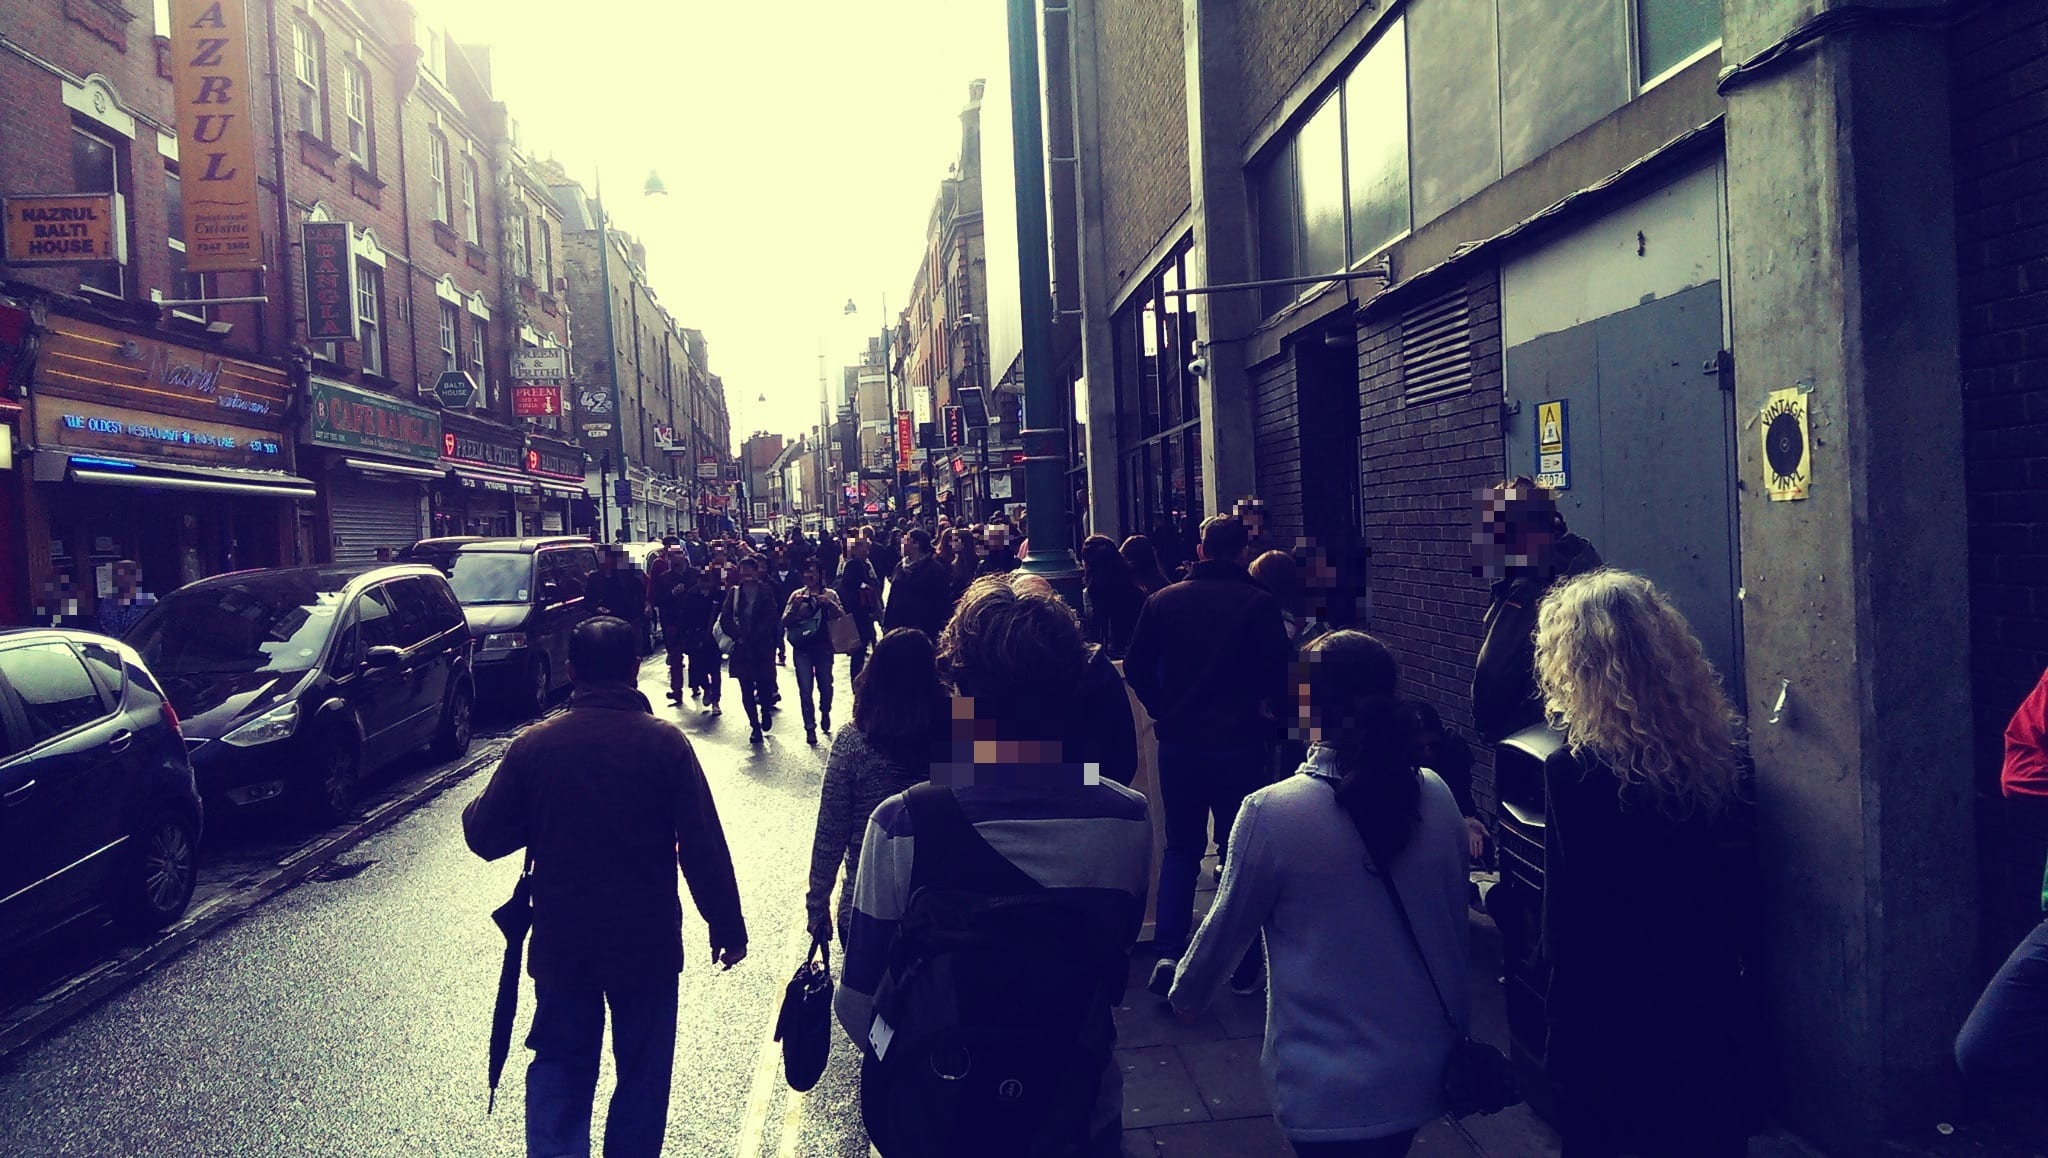 Brick Lane Street area